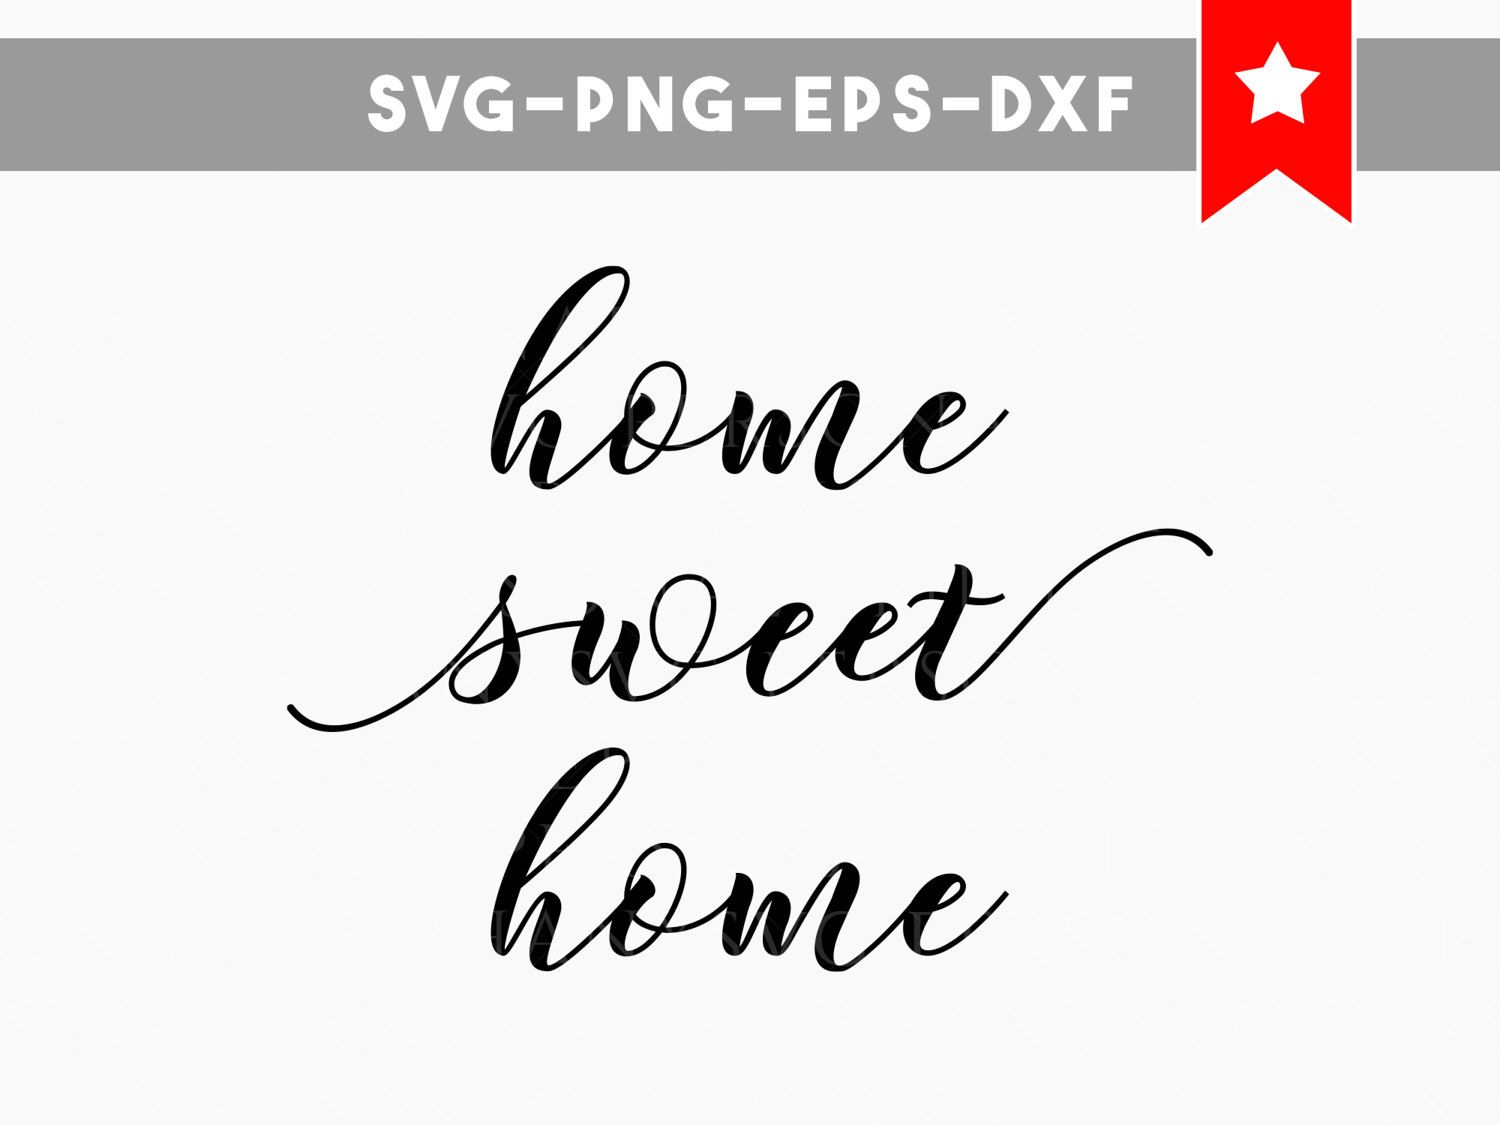 home sweet home svg files home sweet svg wood signs sayings silhouette cameo files house svg rustic home decor housewarming gift by personalepiphany